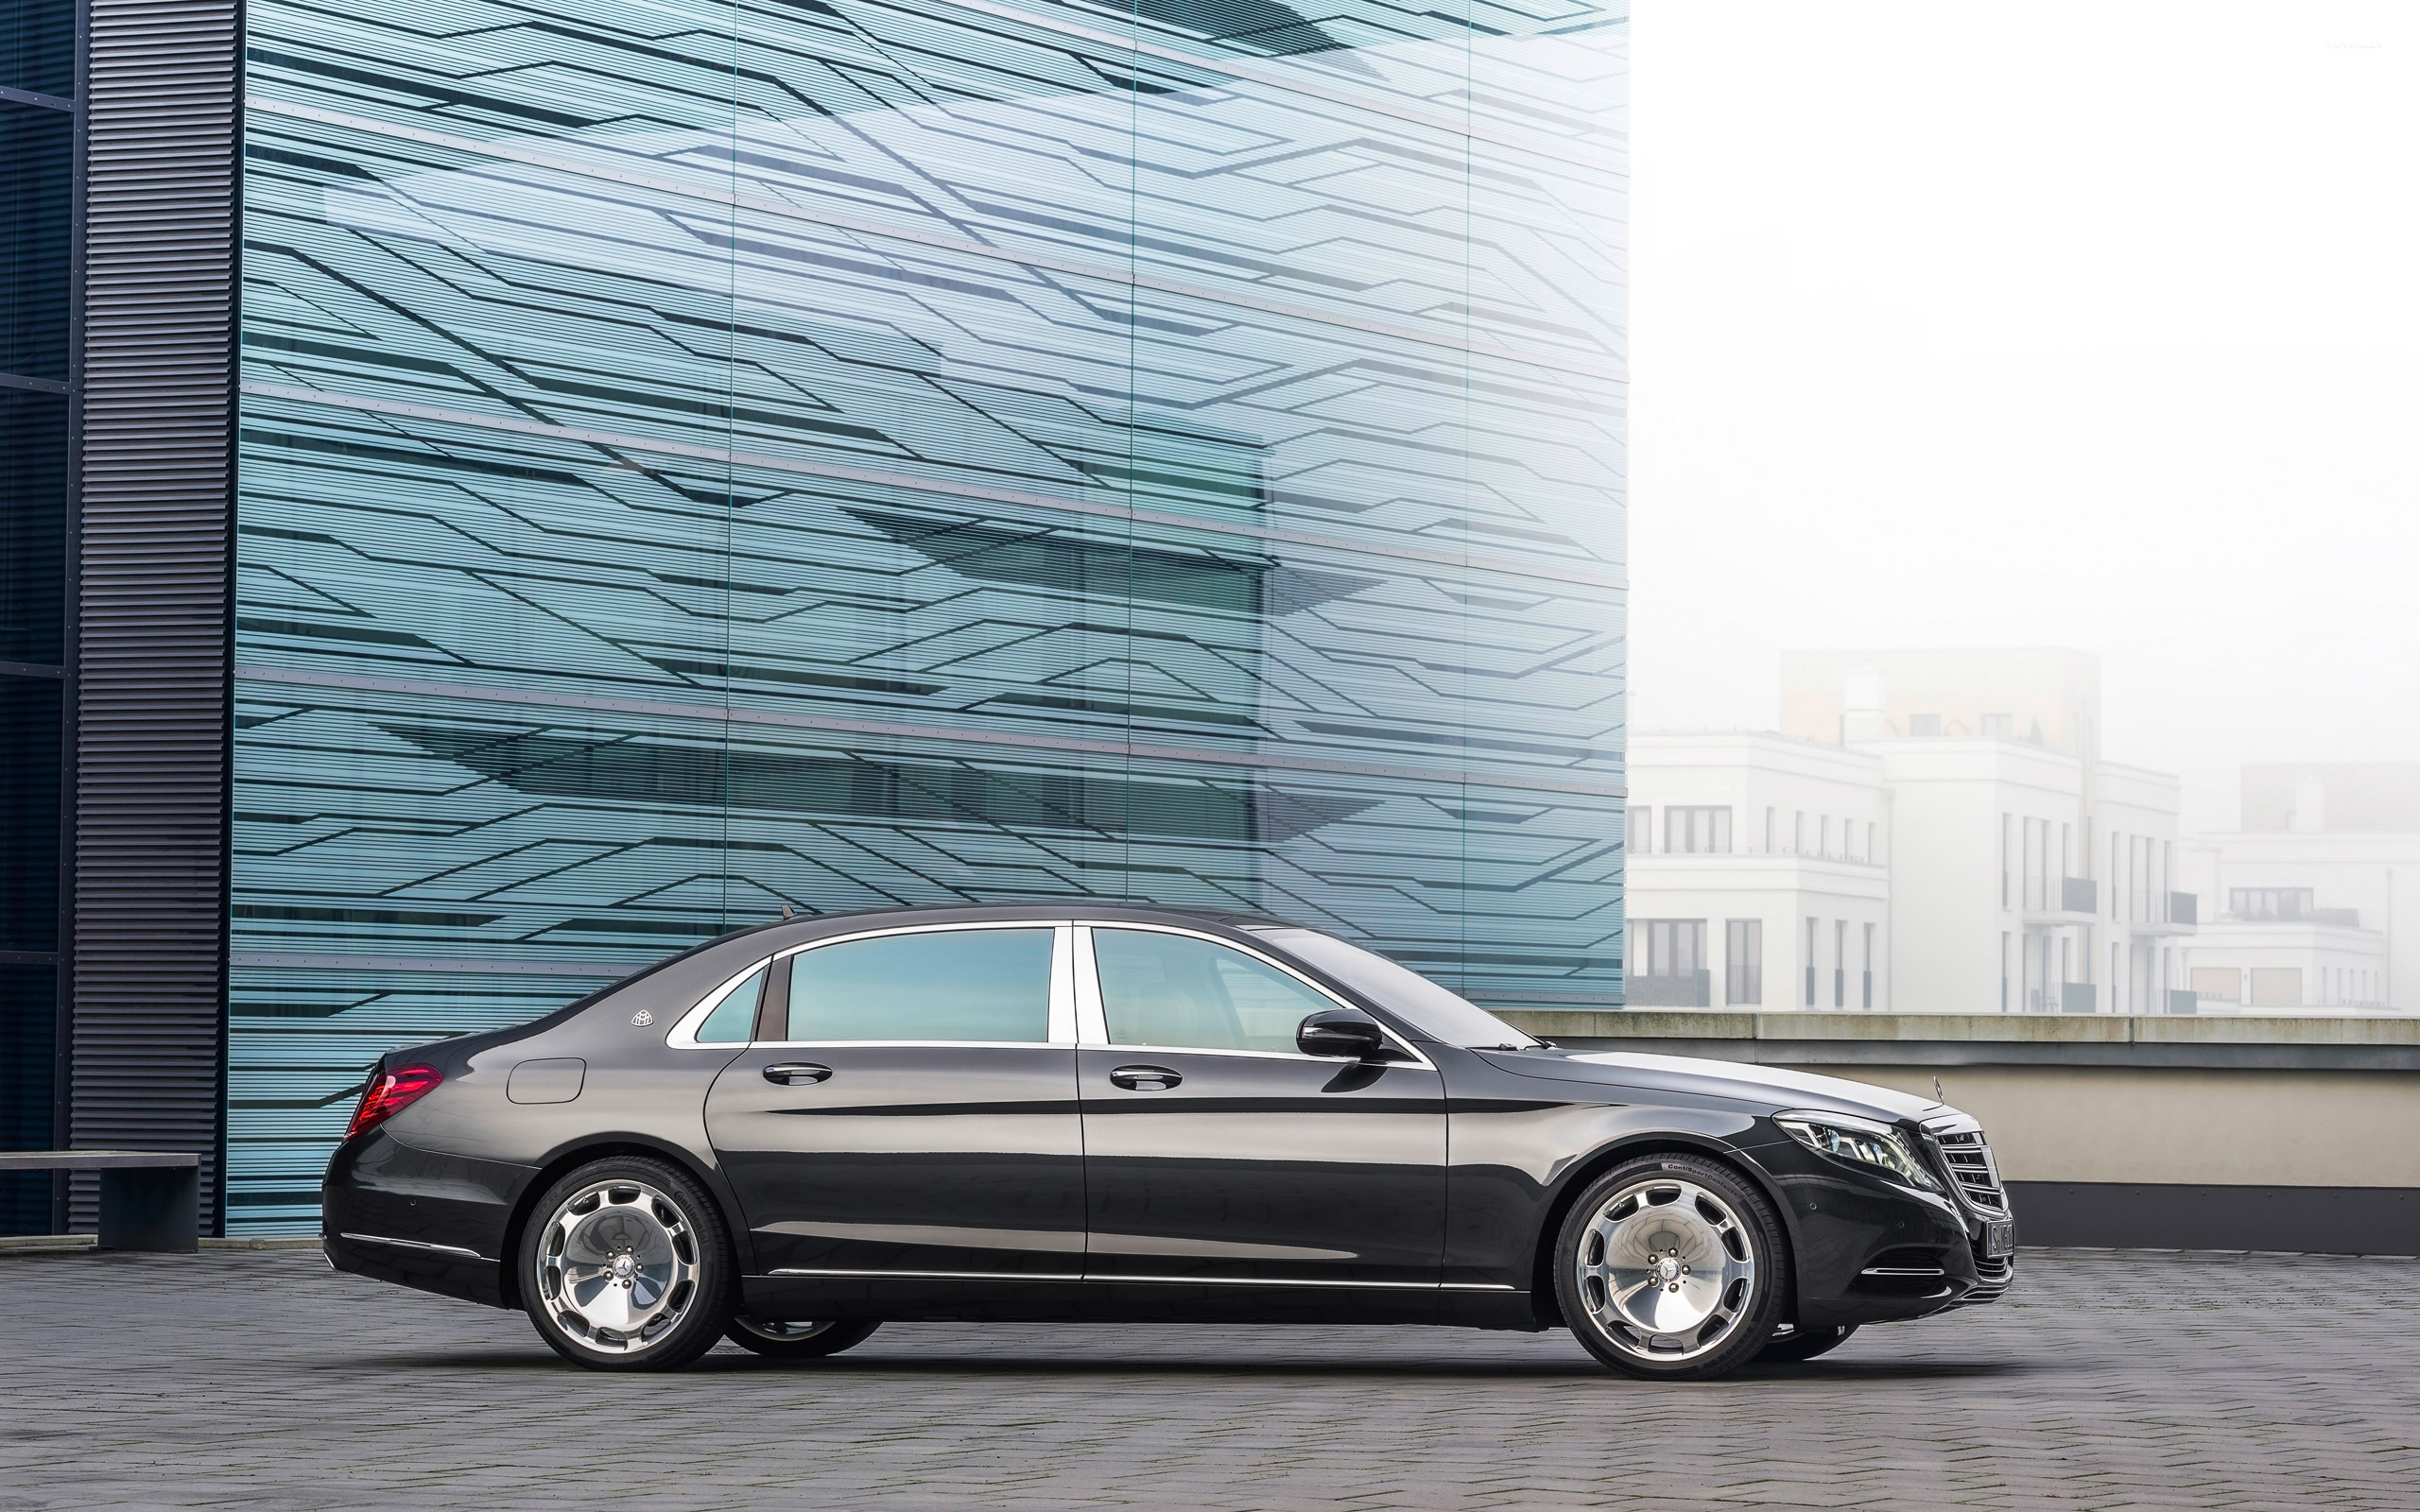 2015 Mercedes Maybach S600 [10] wallpaper   Car wallpapers 2560x1600